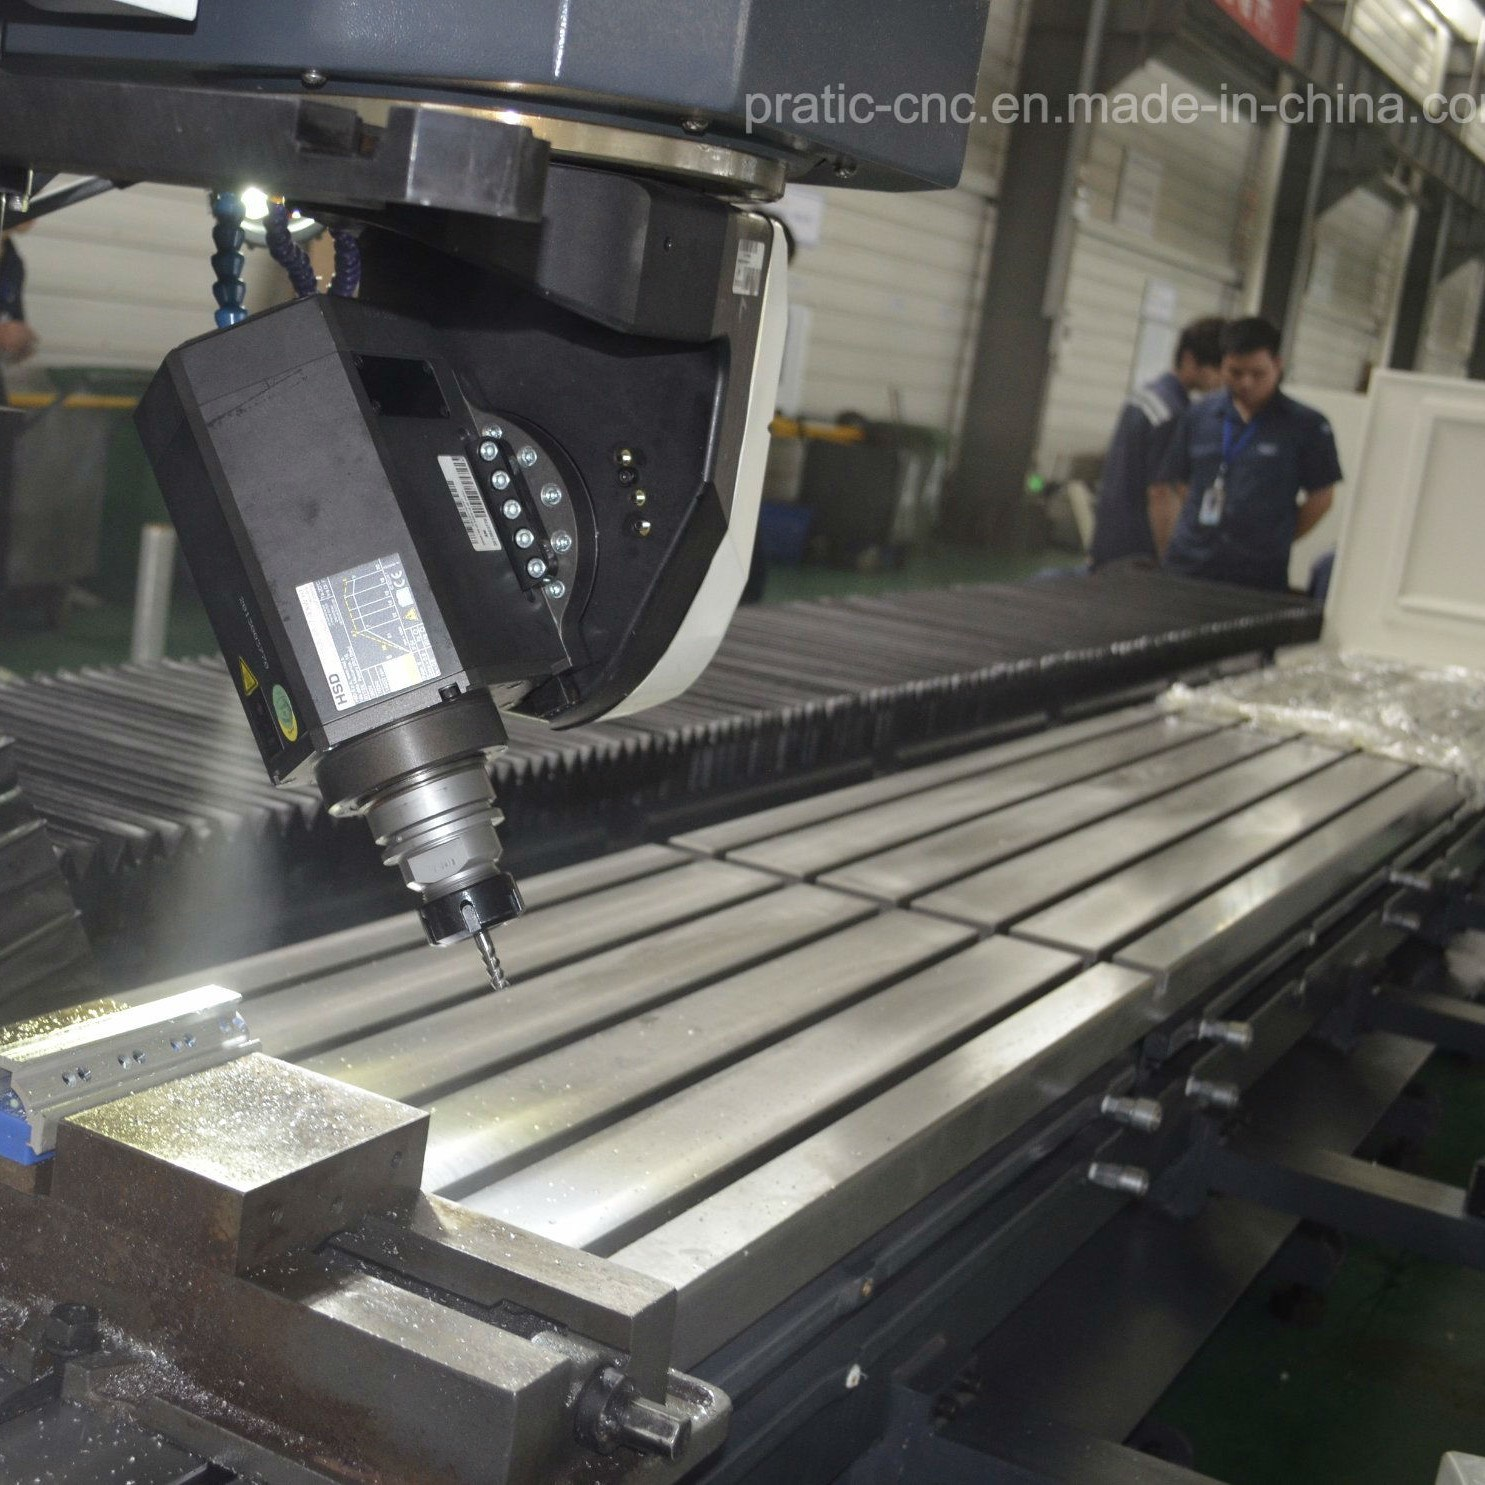 CNC Aluminum Profile Milling Machine -Pratic Pyb Series